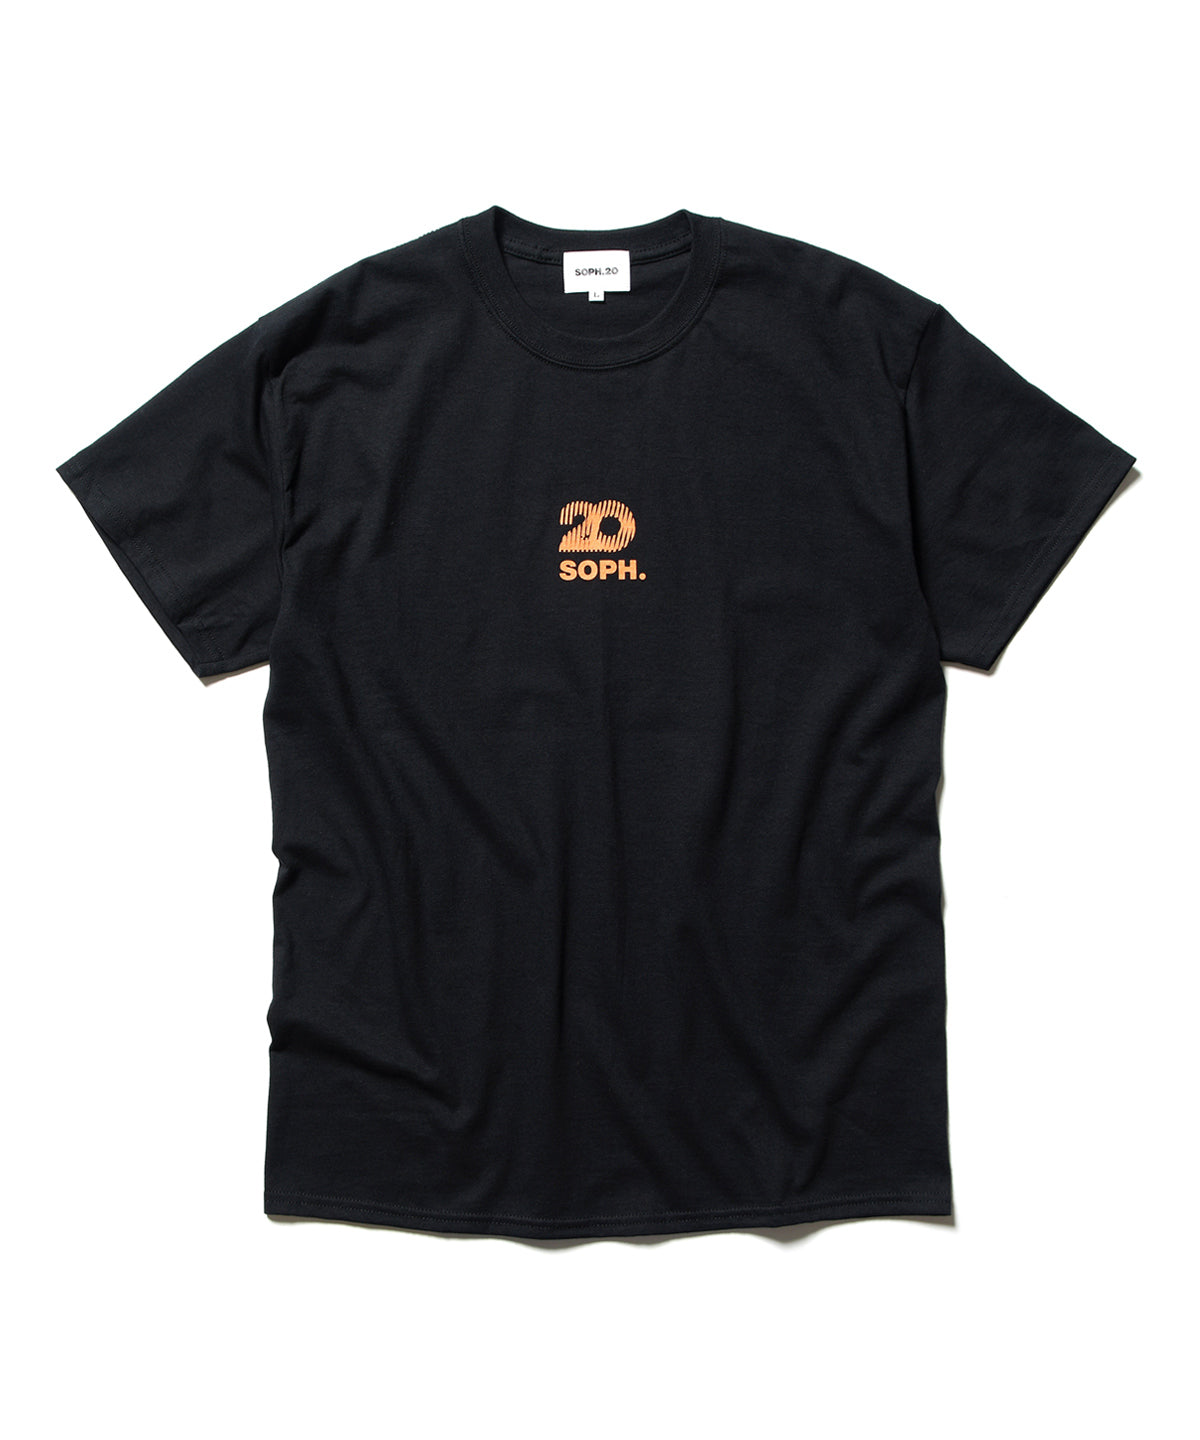 SOPH.20 CHEST SQUARE LOGO TEE